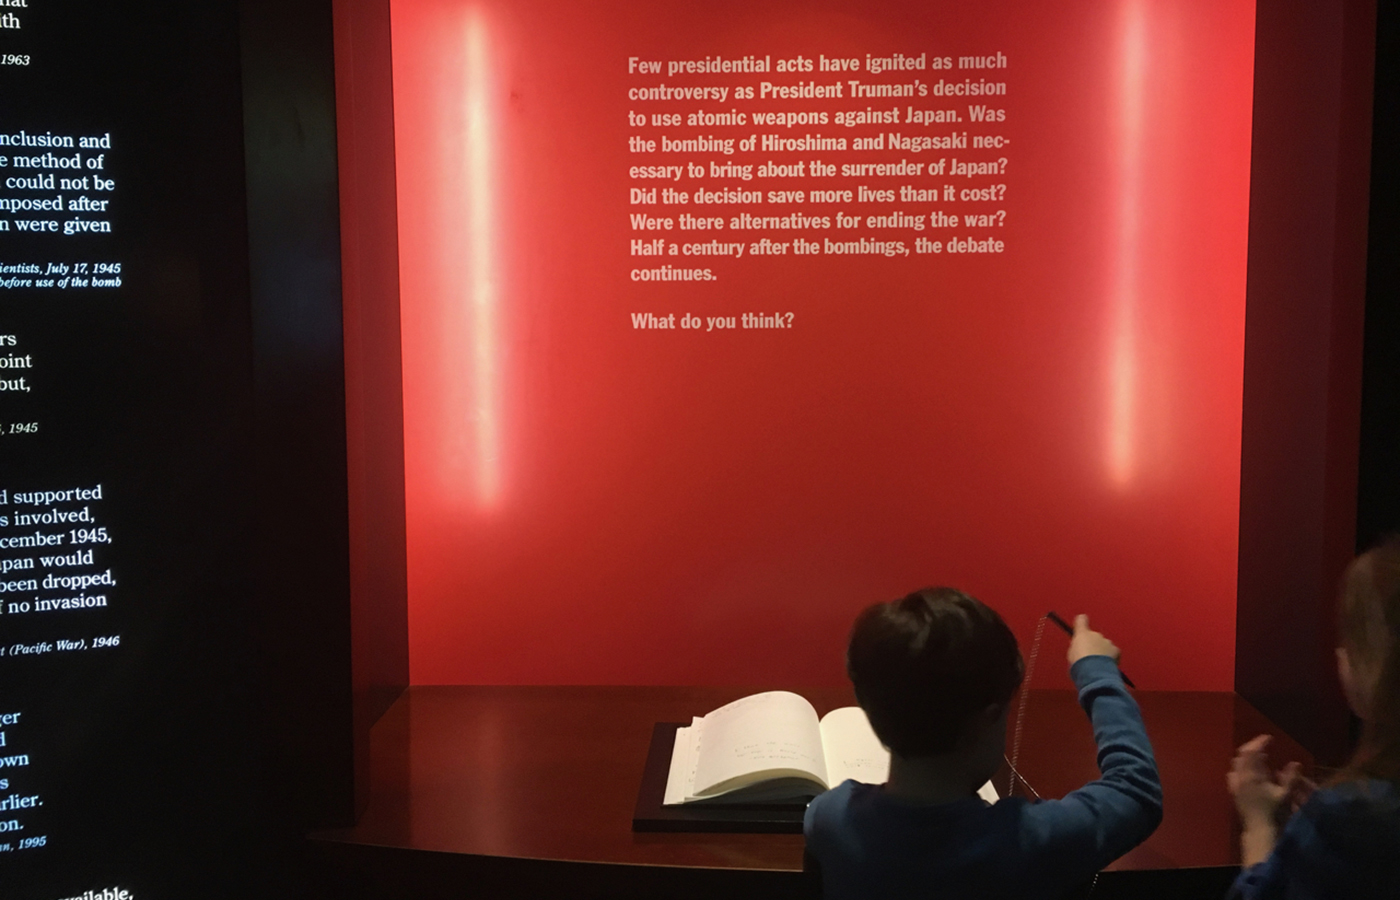 The Harry S. Truman museum tackles controversial topics